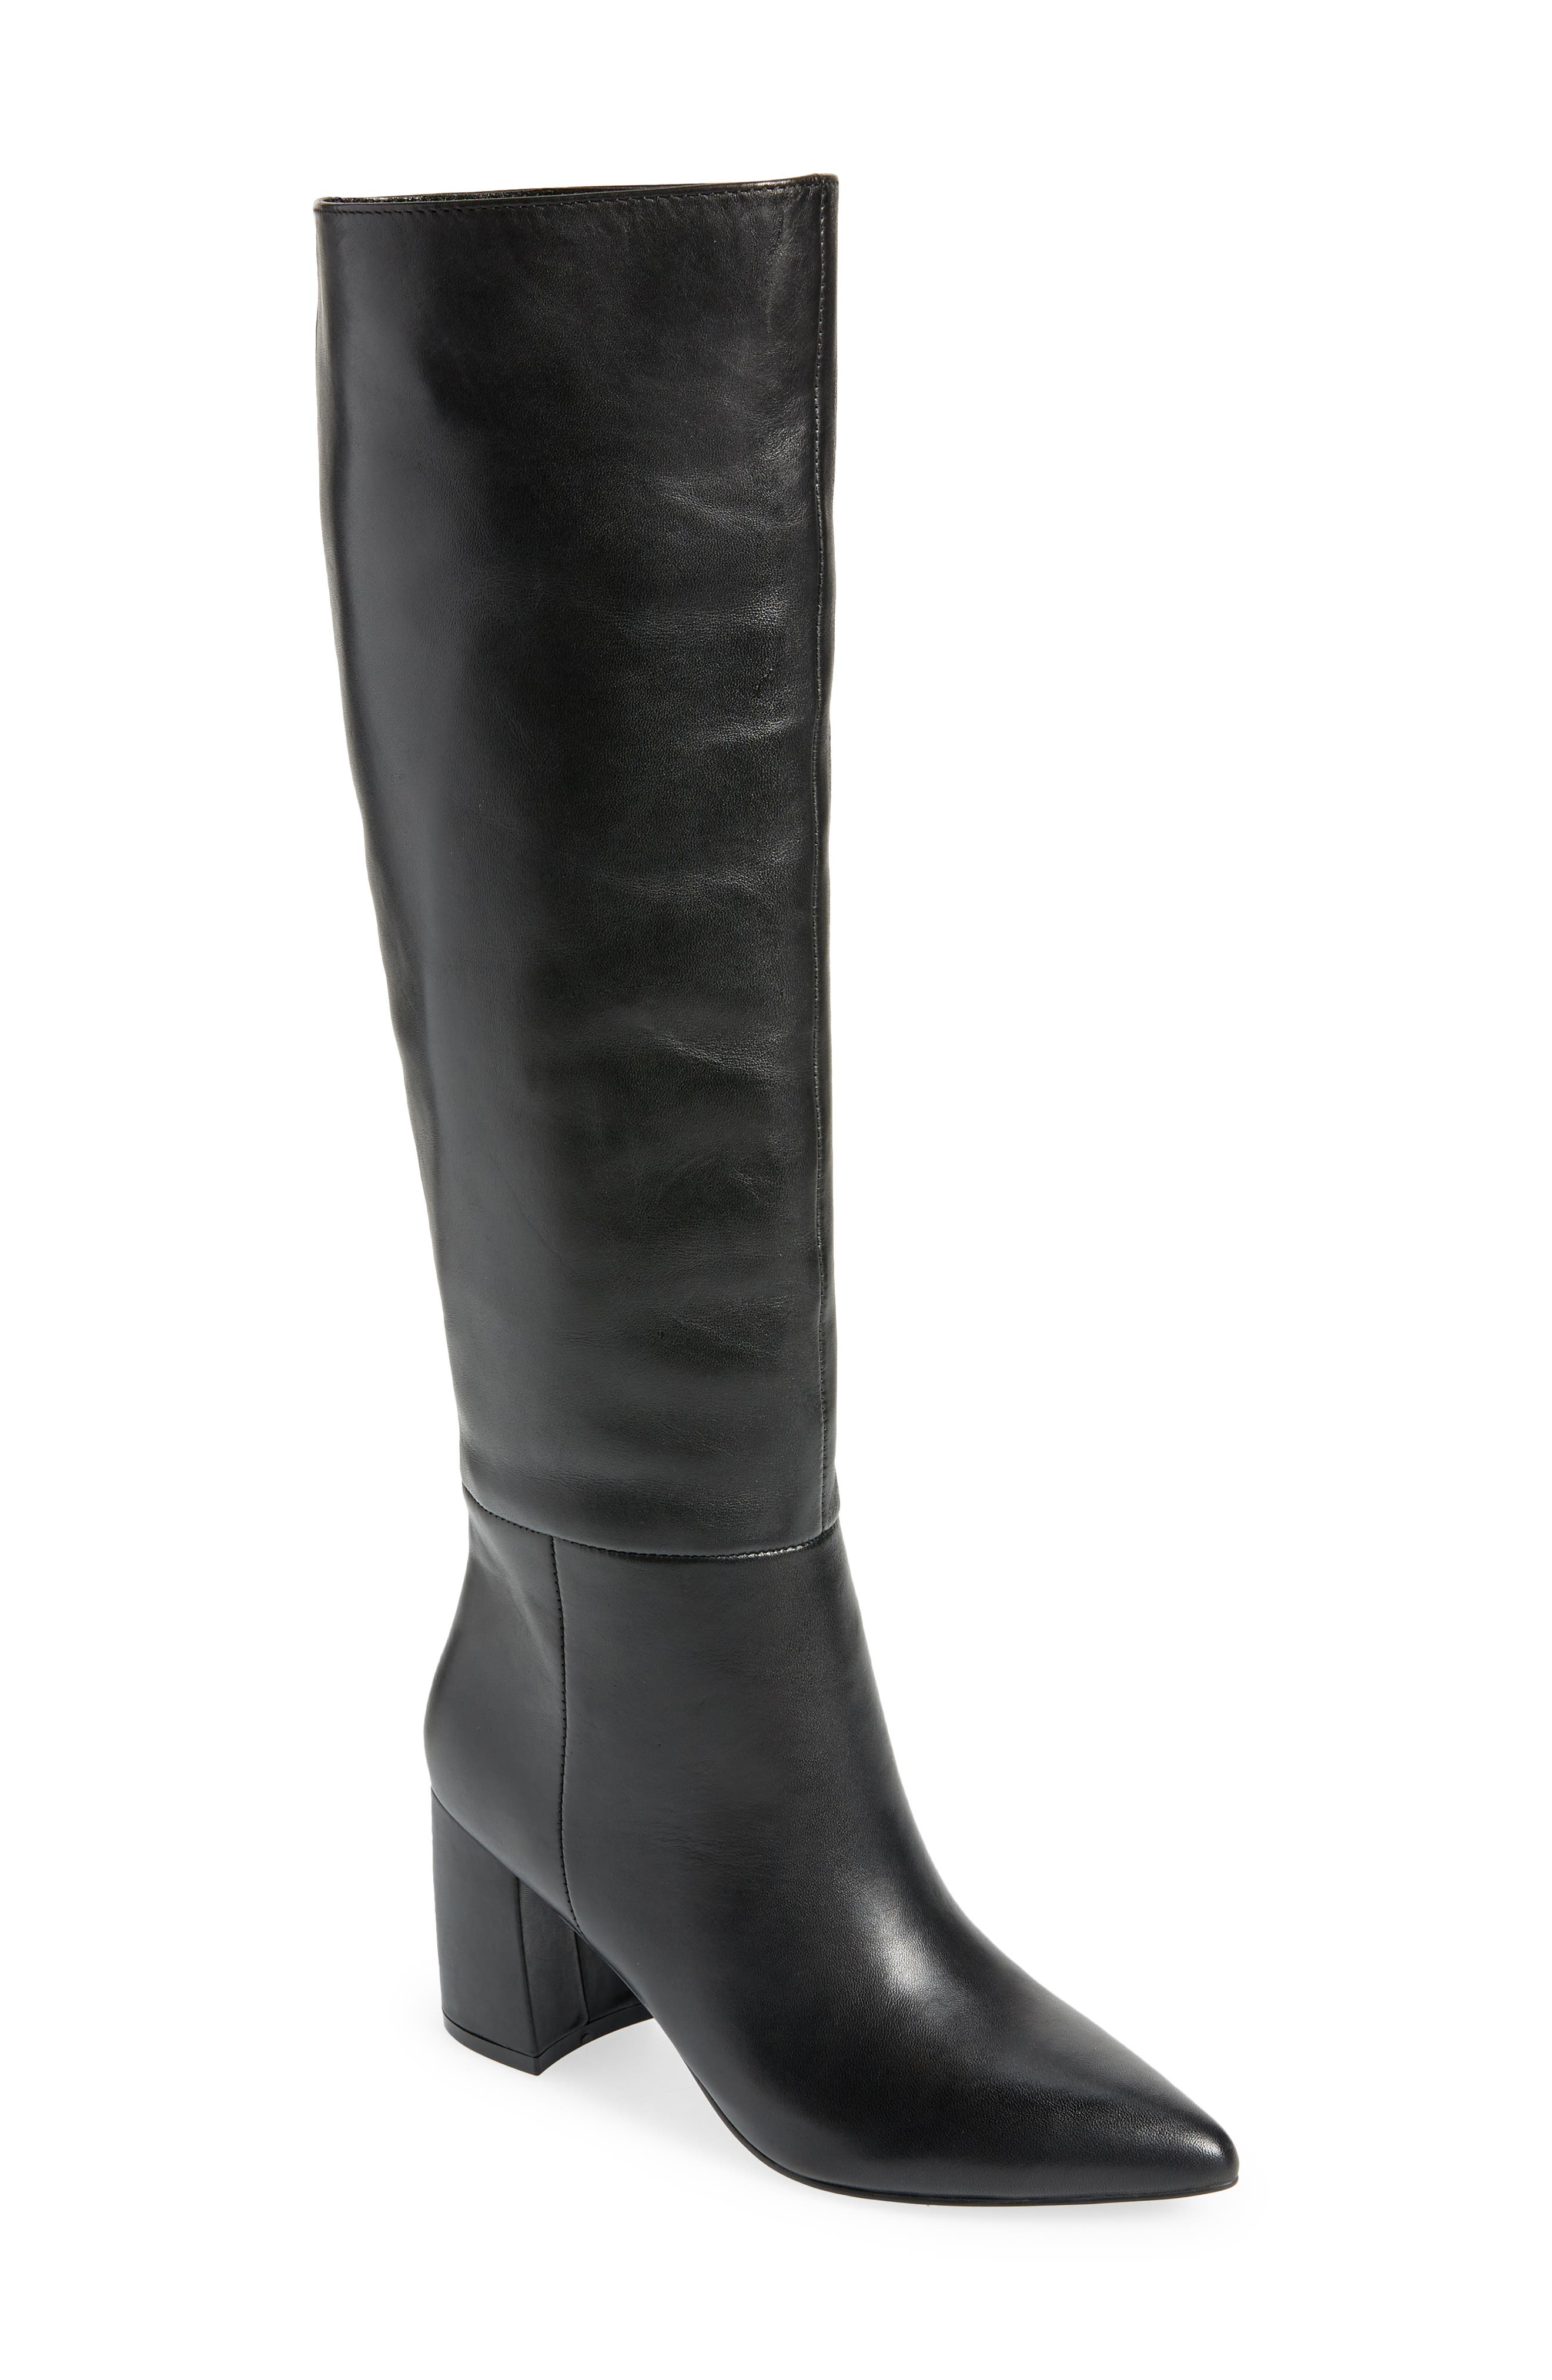 Image of Steve Madden Nilly Knee High Boot